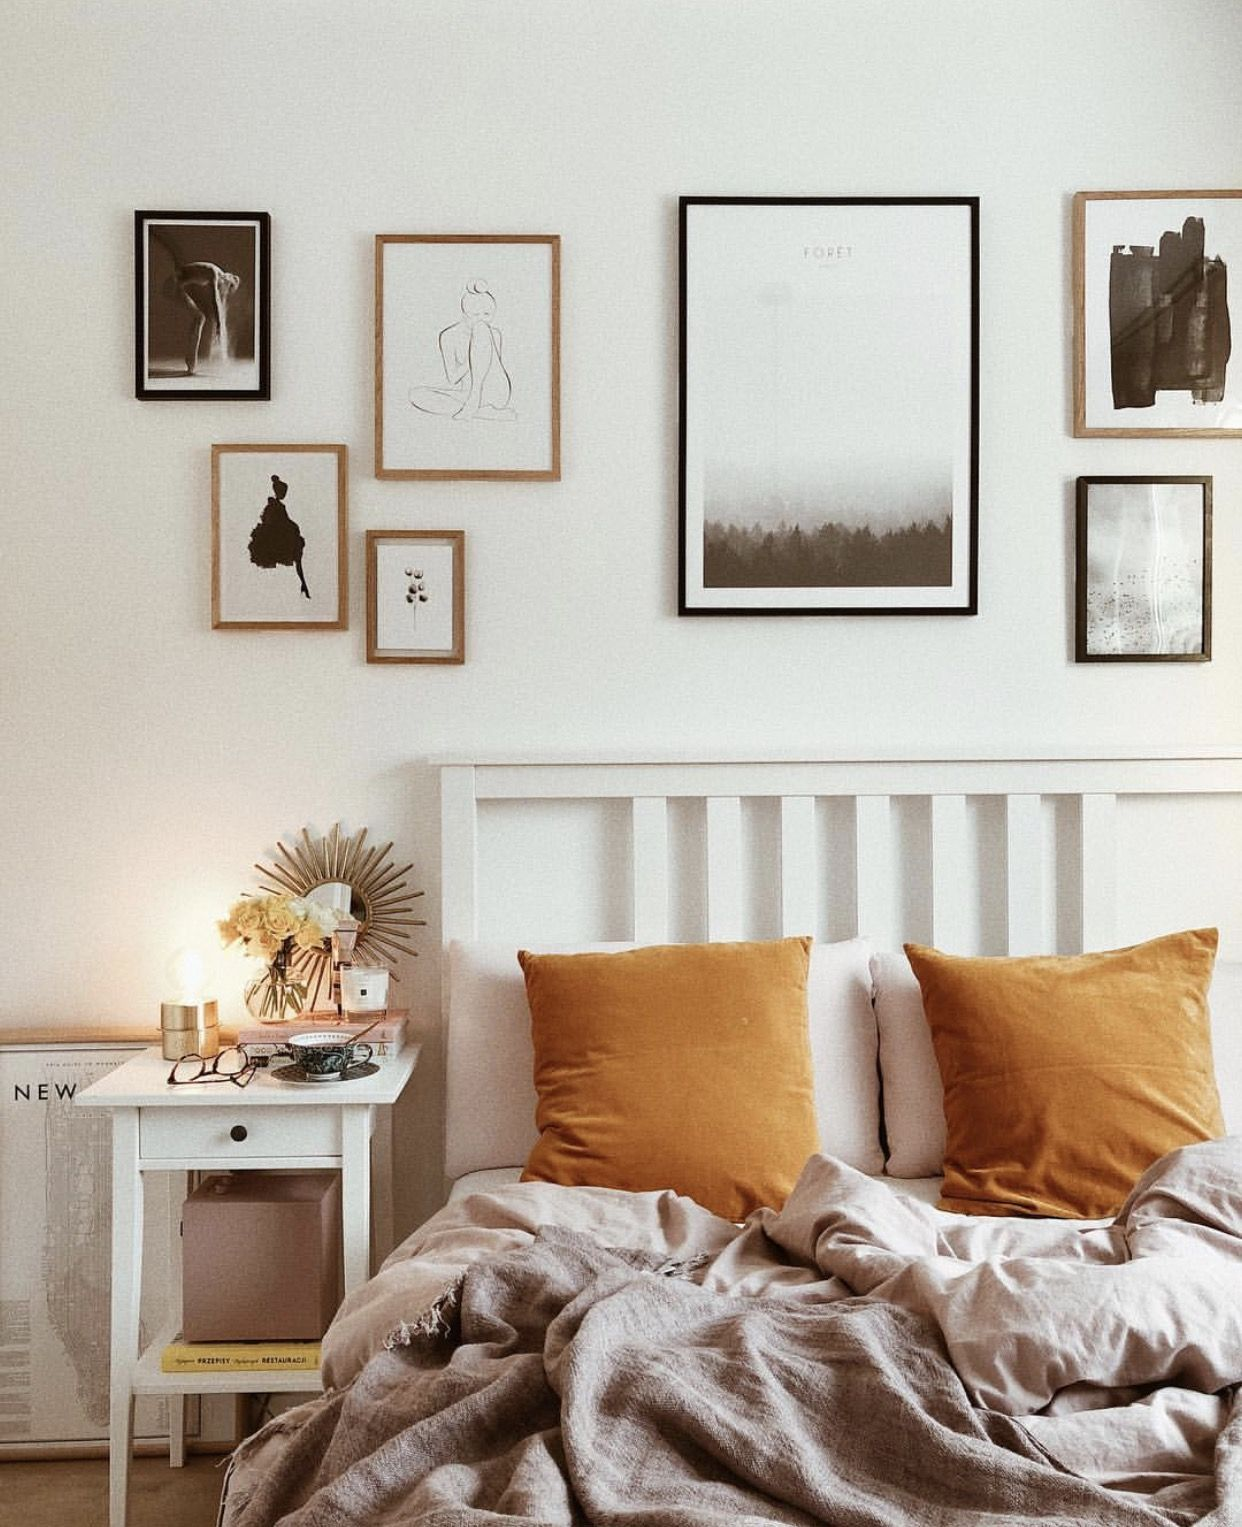 Bedroom Wall Decor Ikea Bedroom Under Window Cute Anime Bedroom Blue And Brown Bedroom Ideas: Ooh, My Dreamy Home. ..